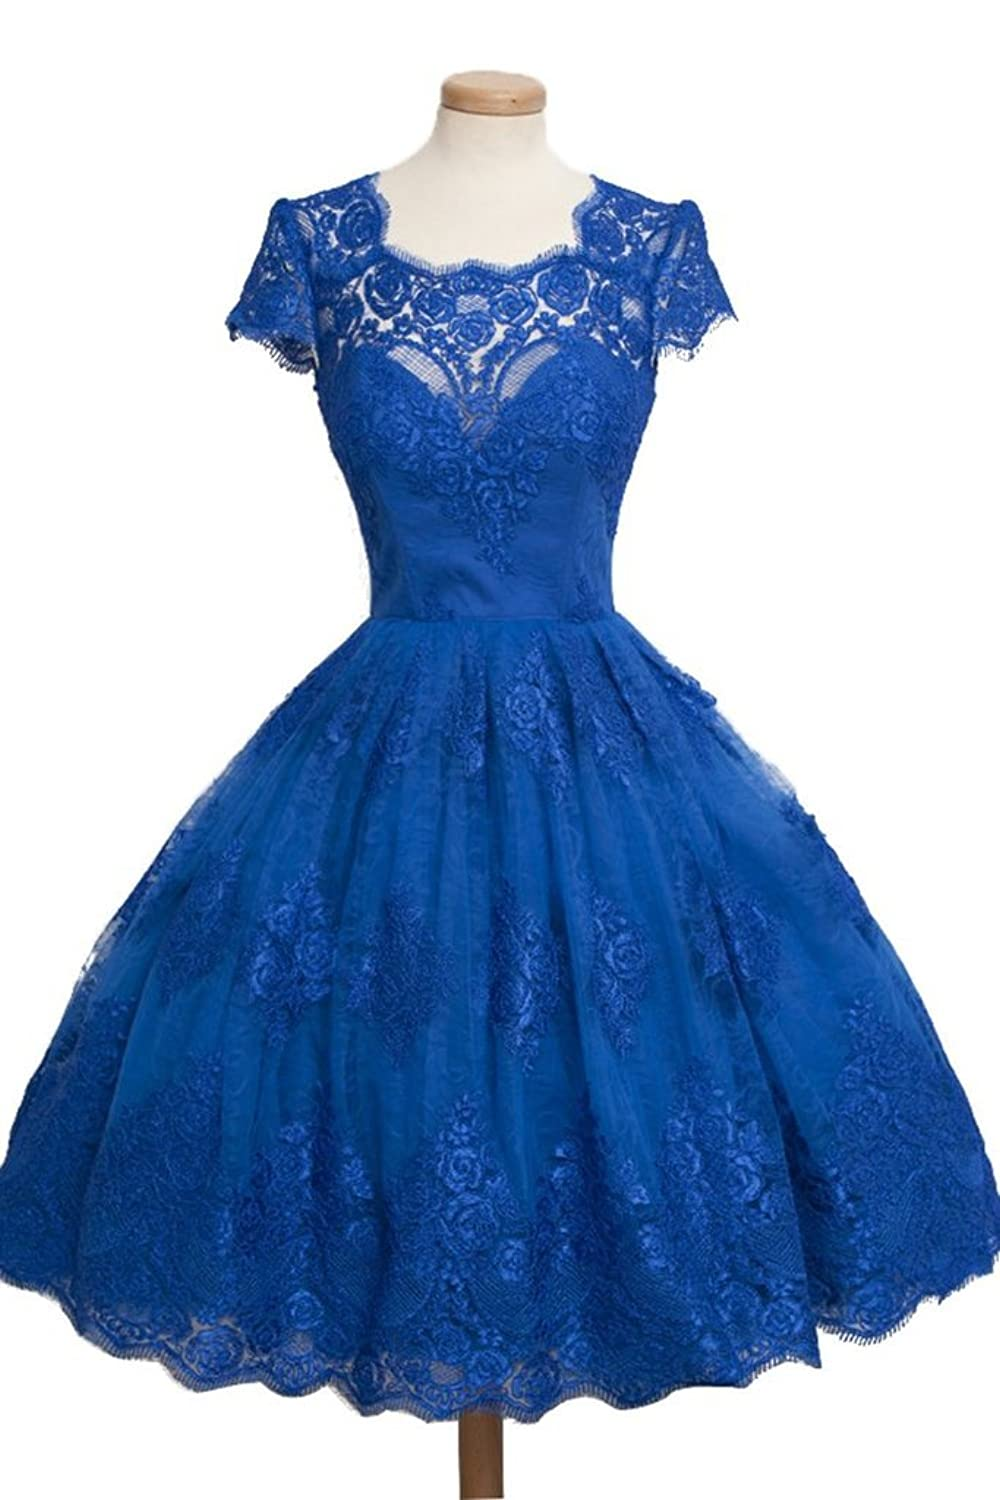 CLOCOLOR Women's Short A-line Lace Tulle Party Cocktail Dress Evening Formal Gowns